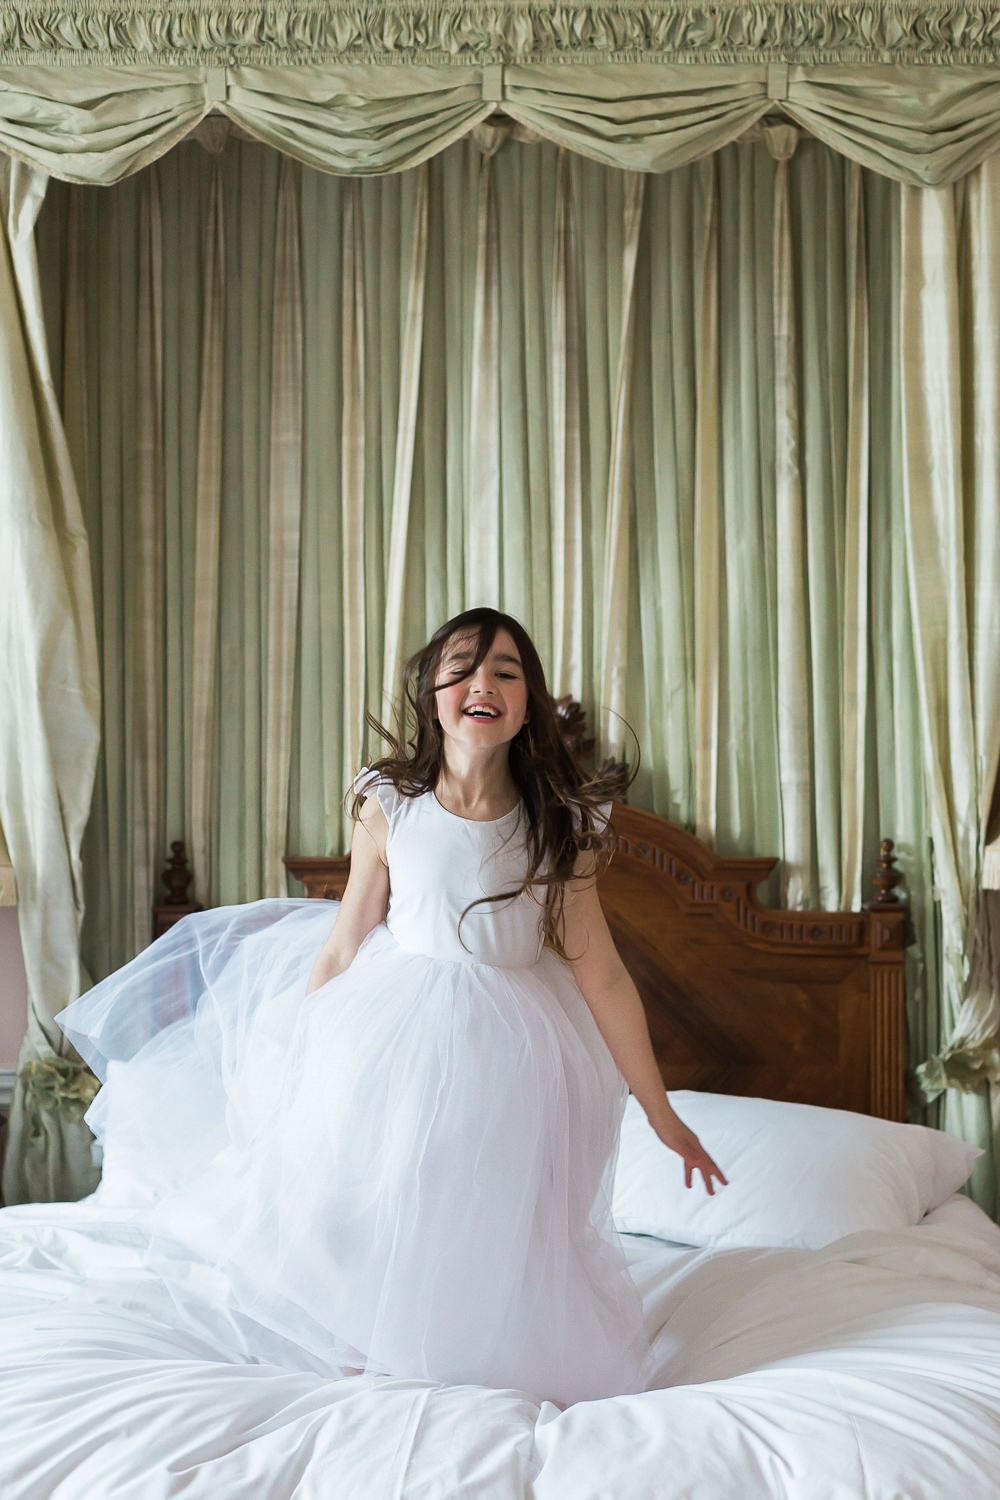 Modern Dance Ballet Inspired Fine Art Editorial Somerley House Morning Flower Girl Gilly Gray Jumping on Bed | Romantic Soft Wedding Ideas Siobhan H Photography